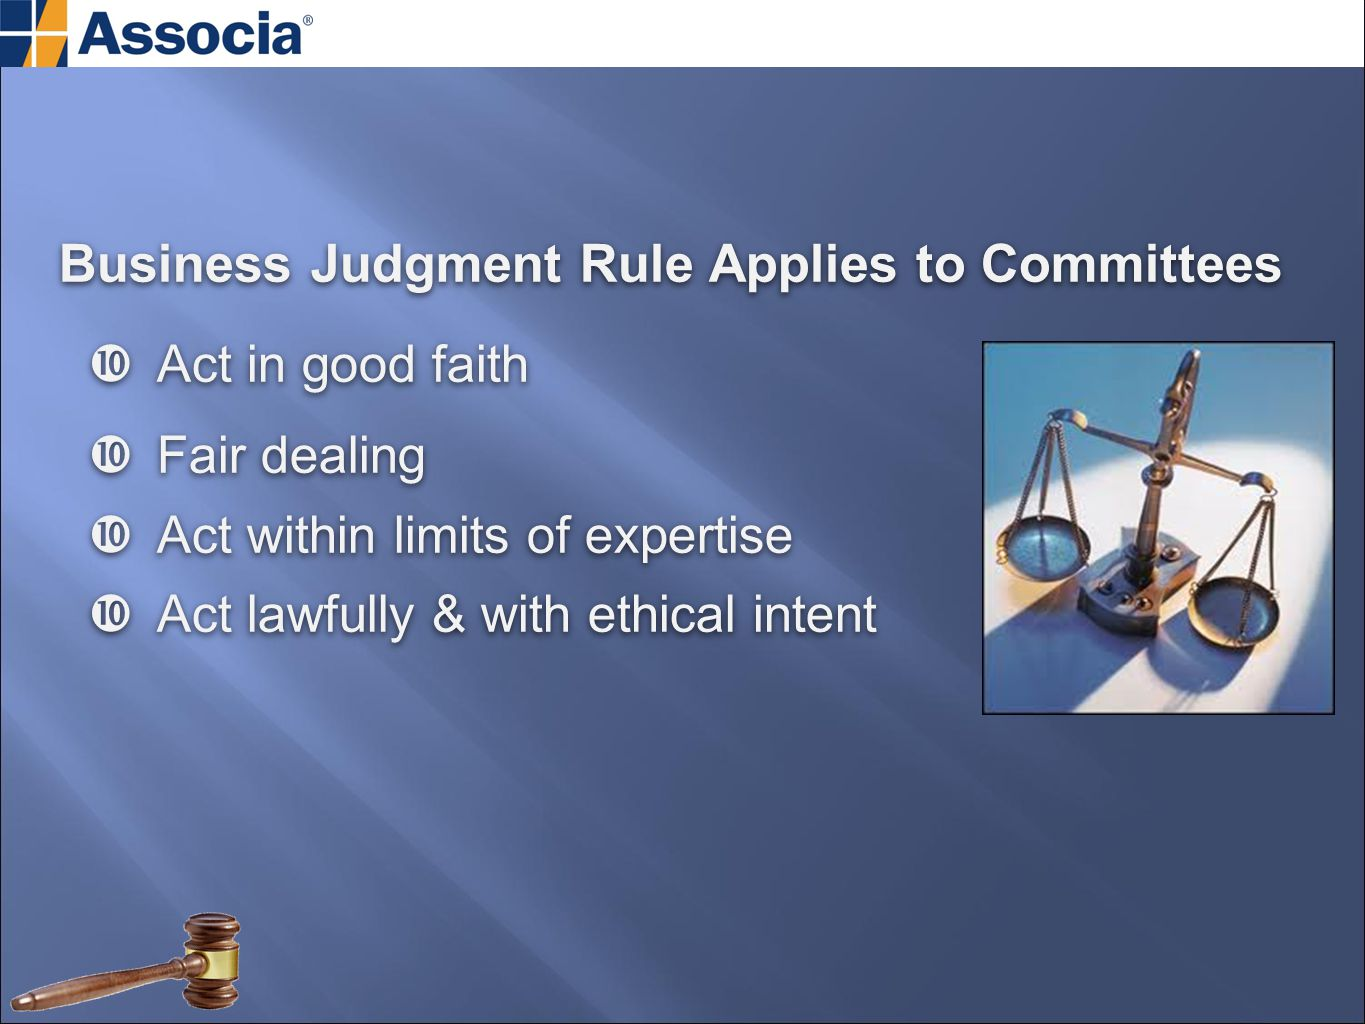 Business Judgment Rule Applies to Committees  Act in good faith  Fair dealing  Act within limits of expertise  Act lawfully & with ethical intent Business Judgment Rule Applies to Committees  Act in good faith  Fair dealing  Act within limits of expertise  Act lawfully & with ethical intent